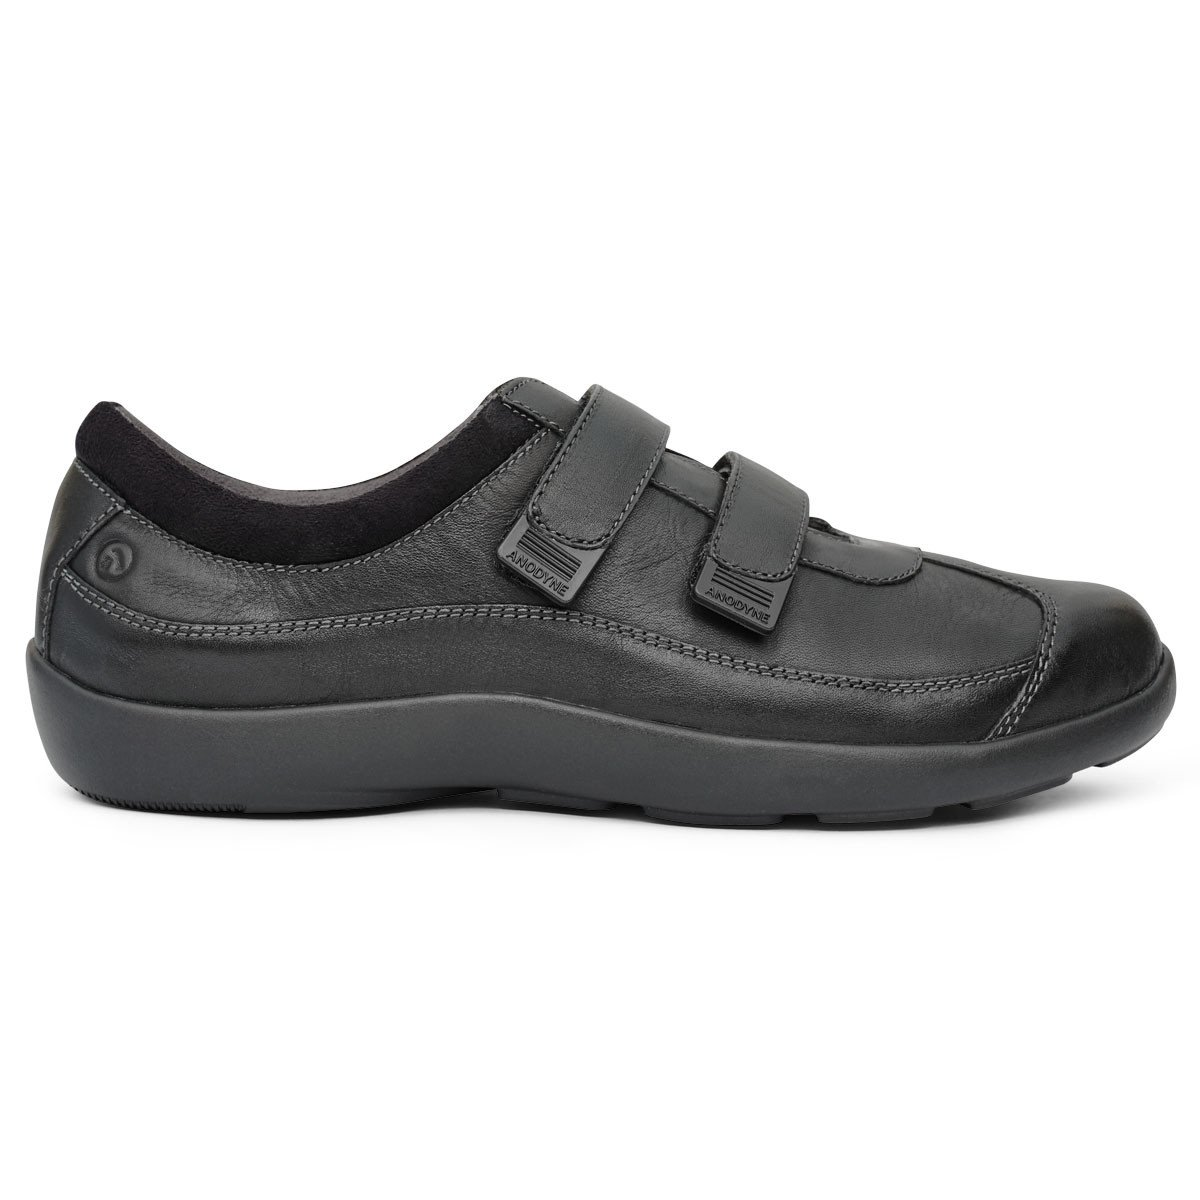 zapatos ortopédicos & zapatos para pacientes con diabetes - Women No 97 Casual Sport Velcro Black Medial 1200x - Zapatos Ortopédicos & Zapatos para Pacientes con Diabetes